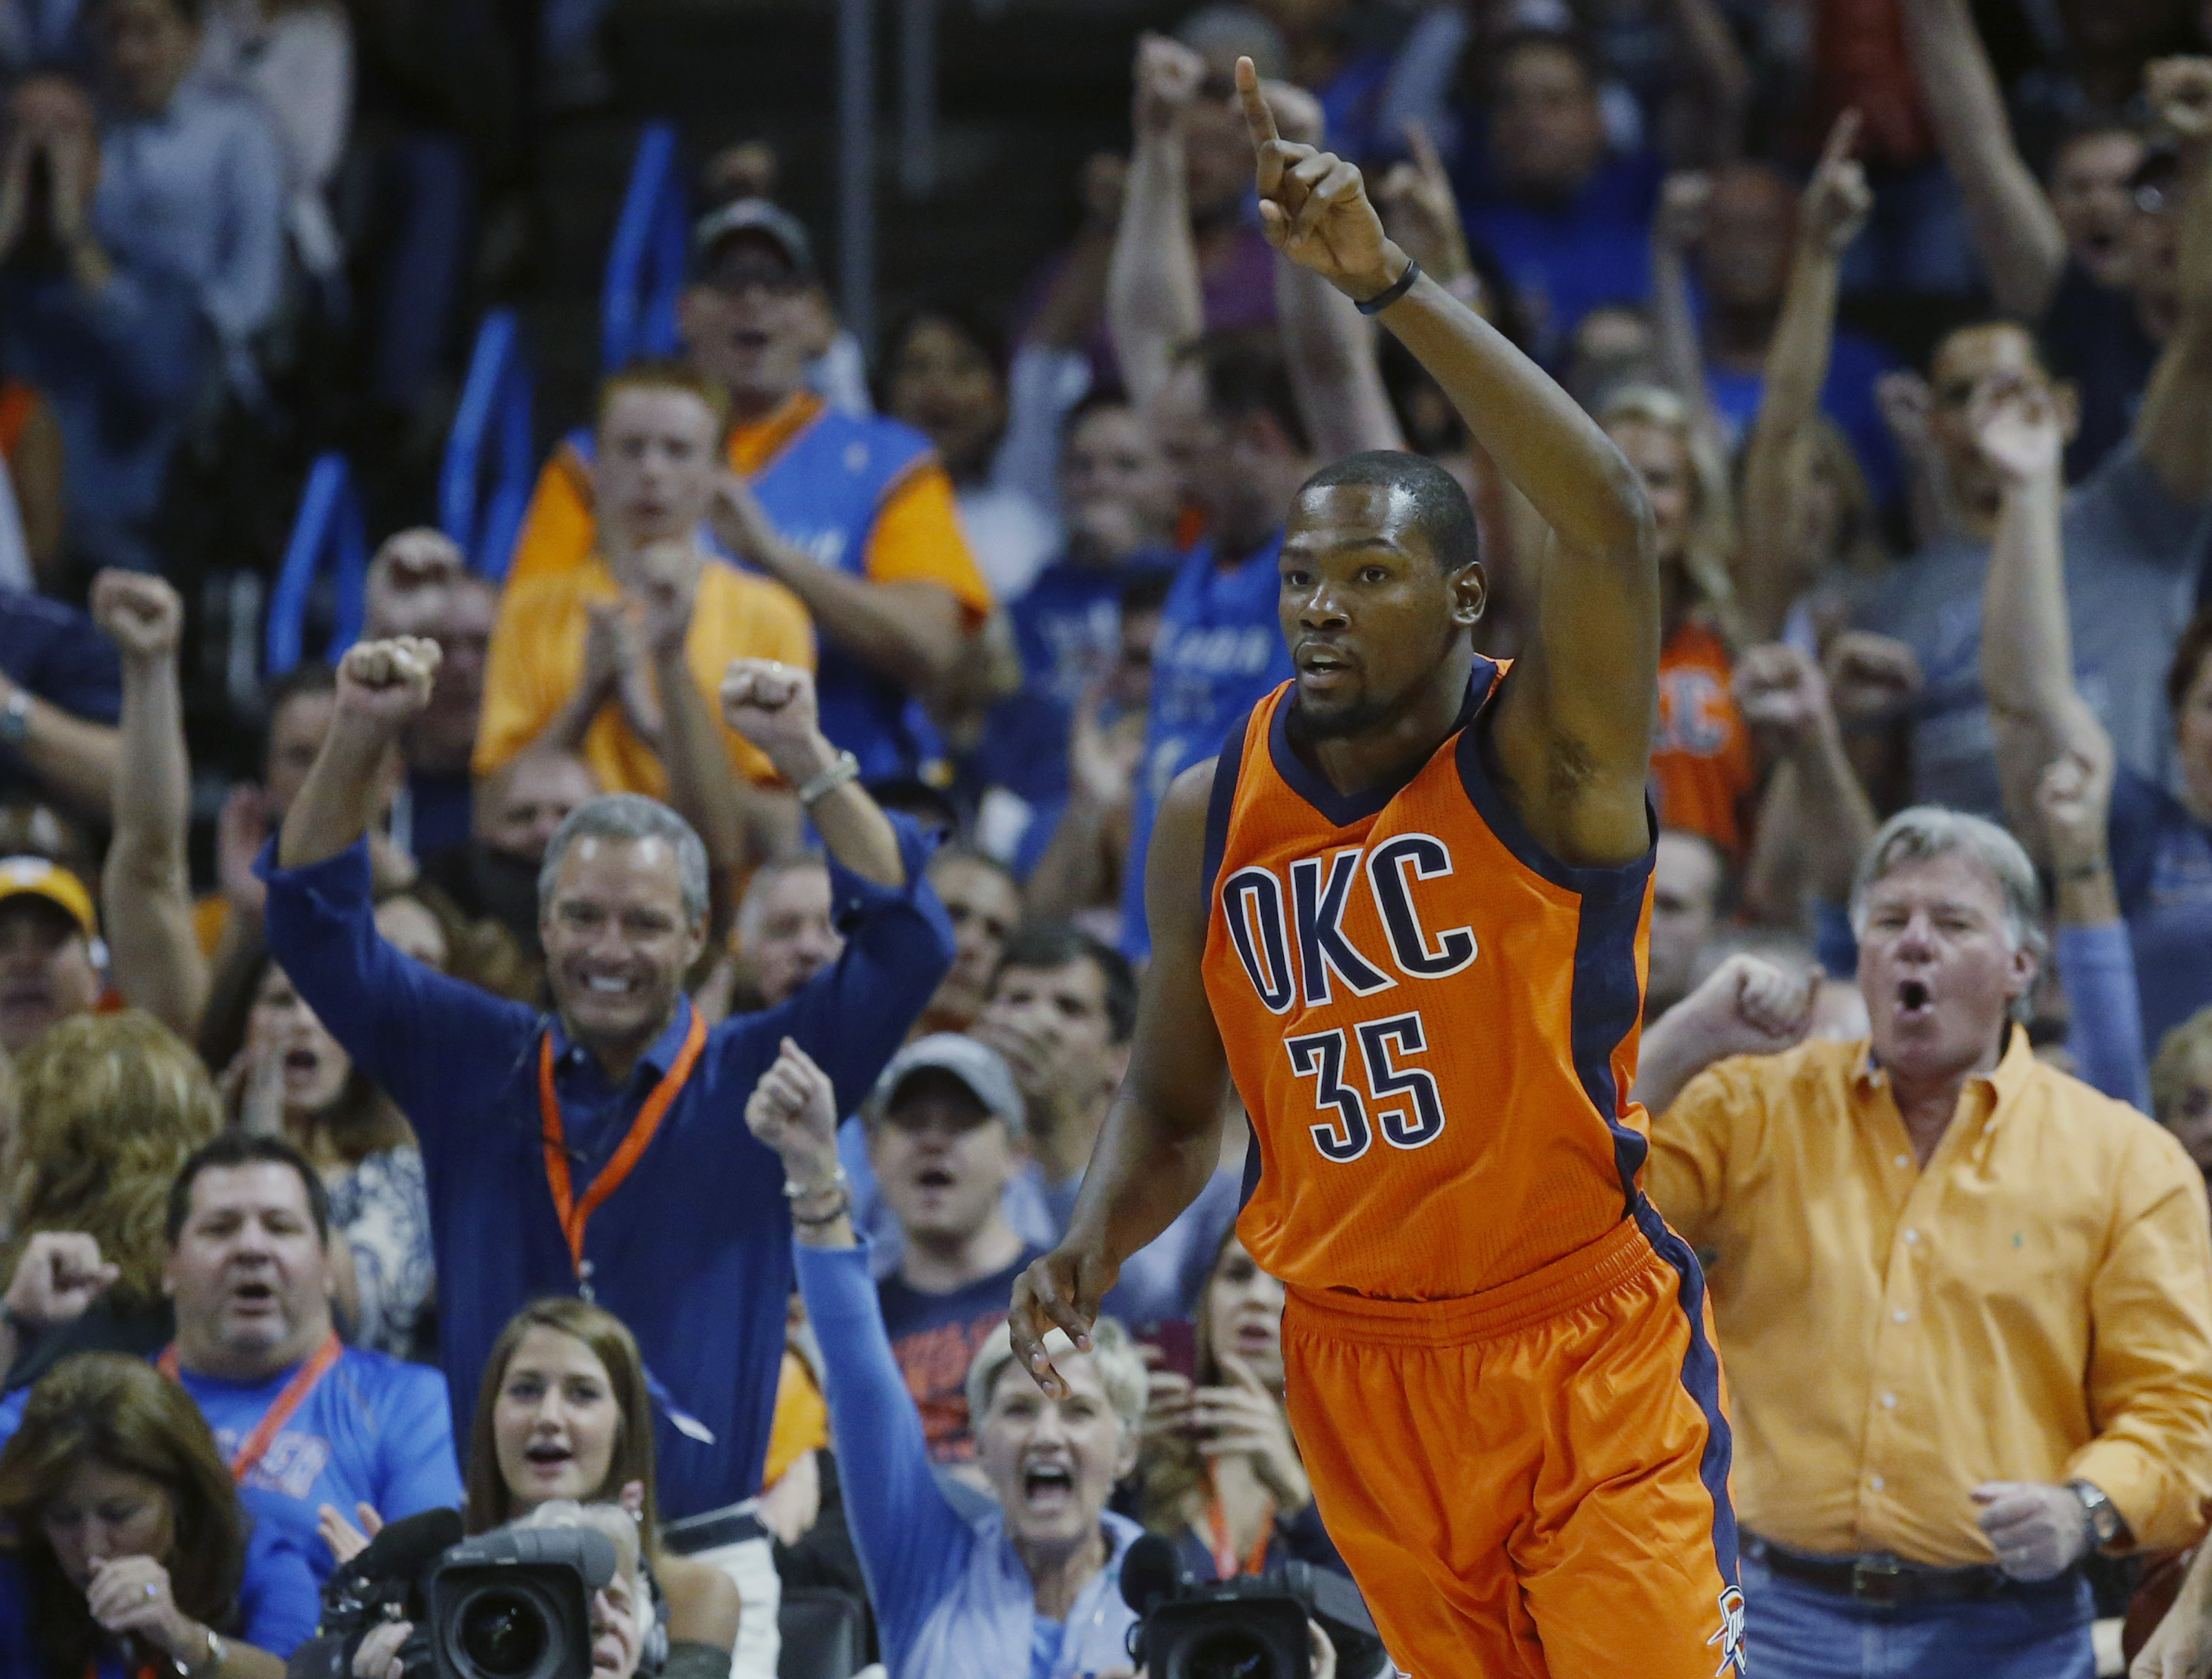 Oklahoma City Thunder forward Kevin Durant (35) celebrates a basket in the first half of an NBA basketball game against the Denver Nuggets in Oklahoma City, Sunday, Nov. 1, 2015. (AP Photo/Sue Ogrocki)